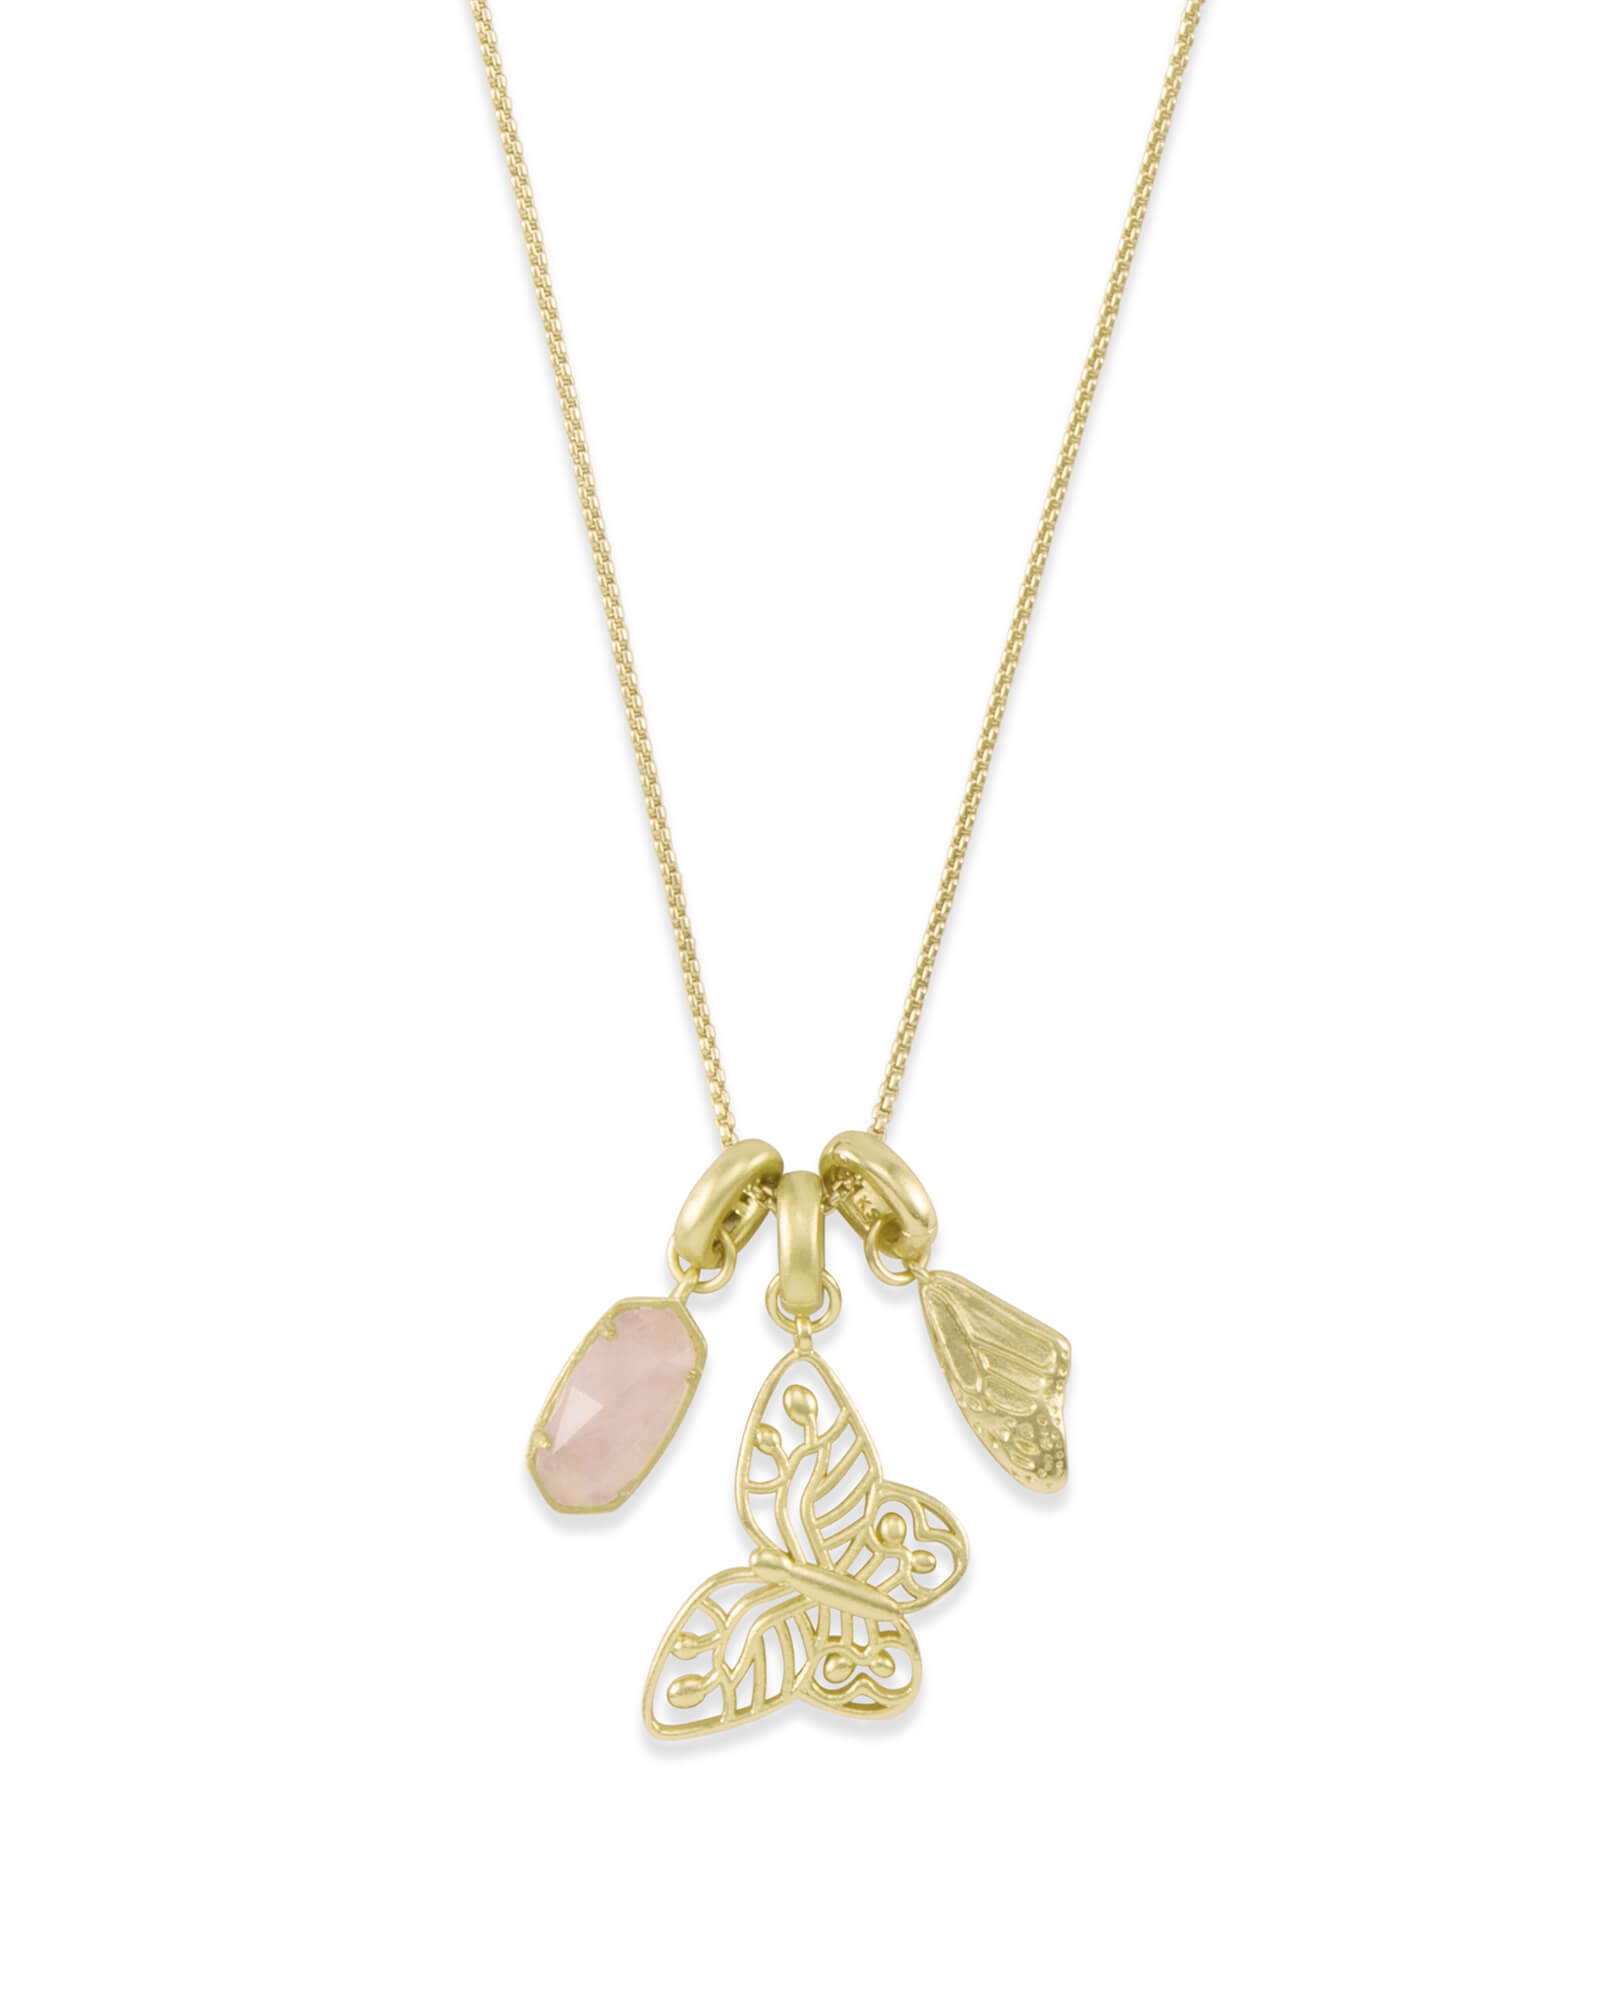 Metastatic Breast Cancer Necklace Charm Set in Gold